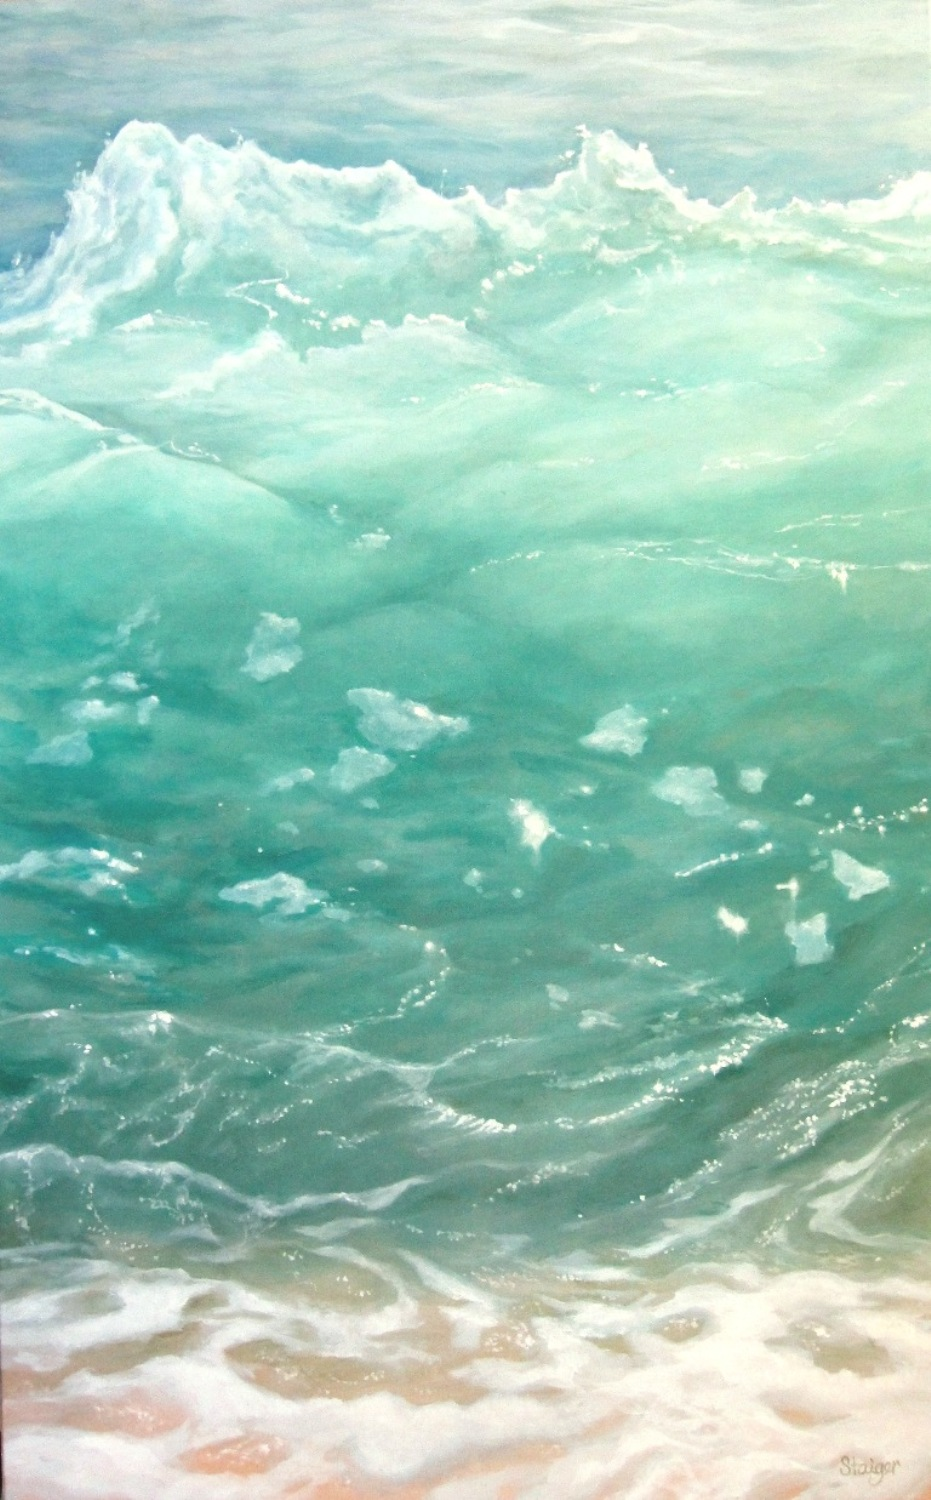 Sea Dreams V, 30 x 48, oil on linen, $2300.